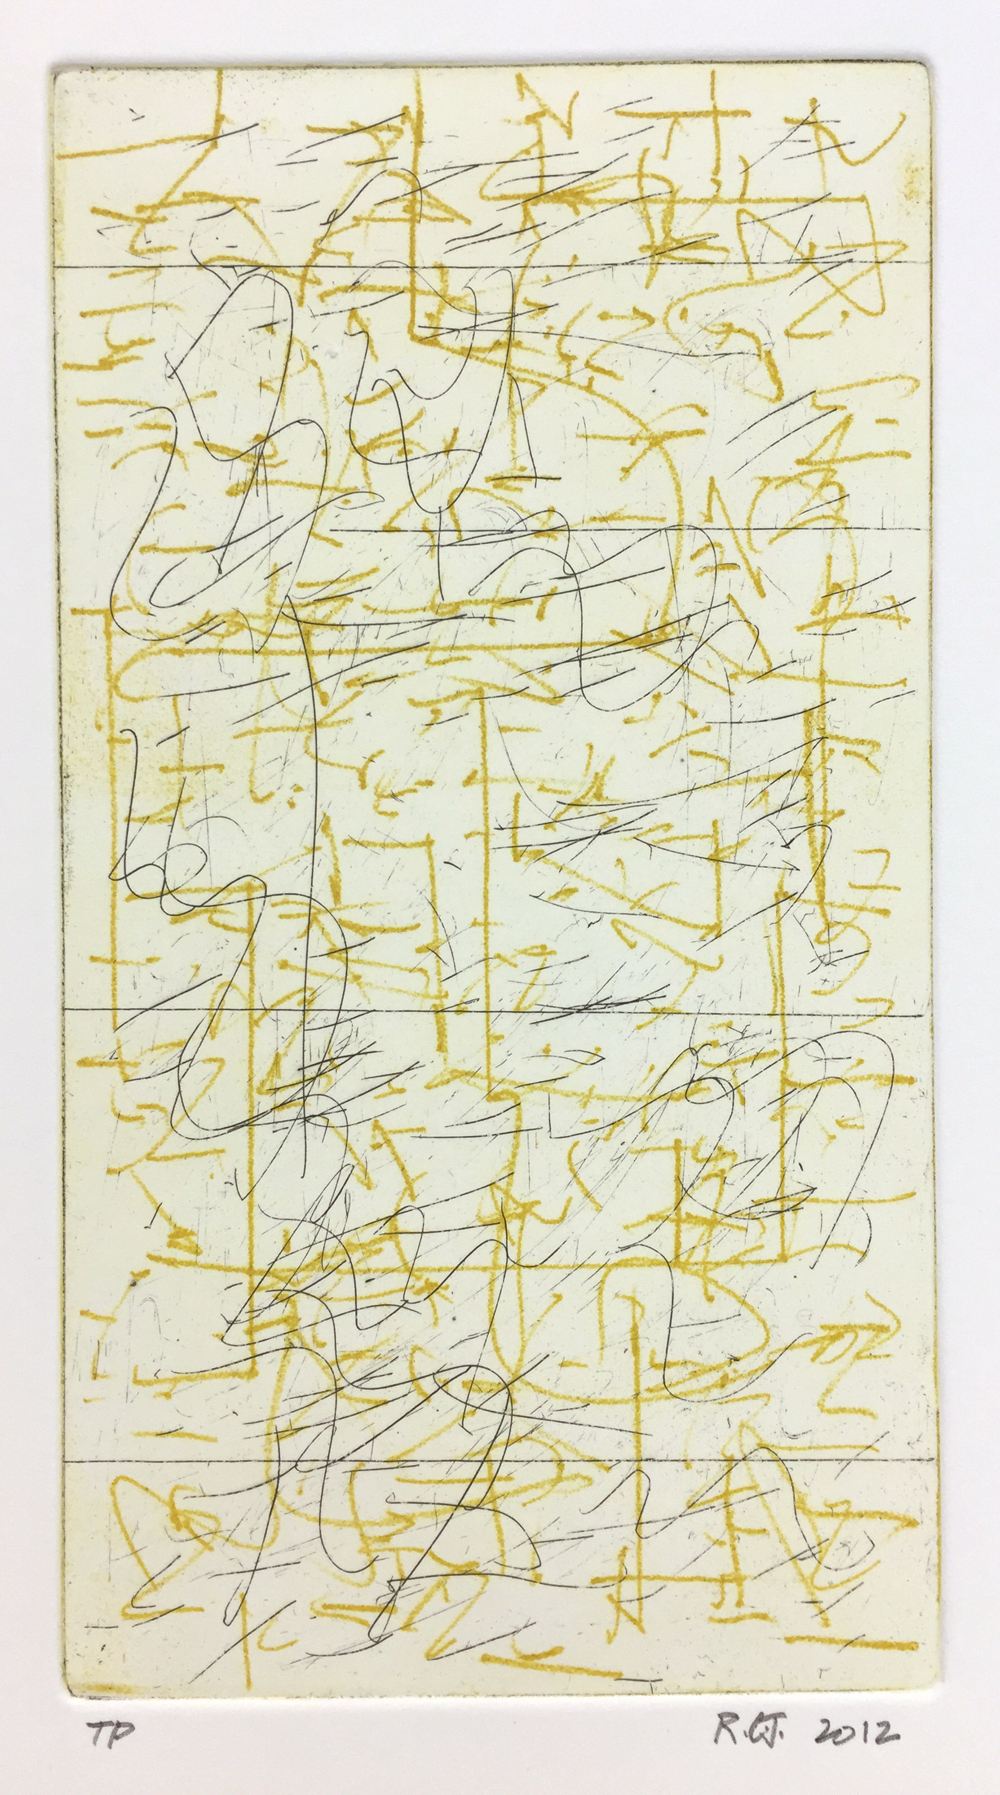 Robert C Jones, TP, 2012, etching and drypoint, 9 x 4.75 inches, $600.